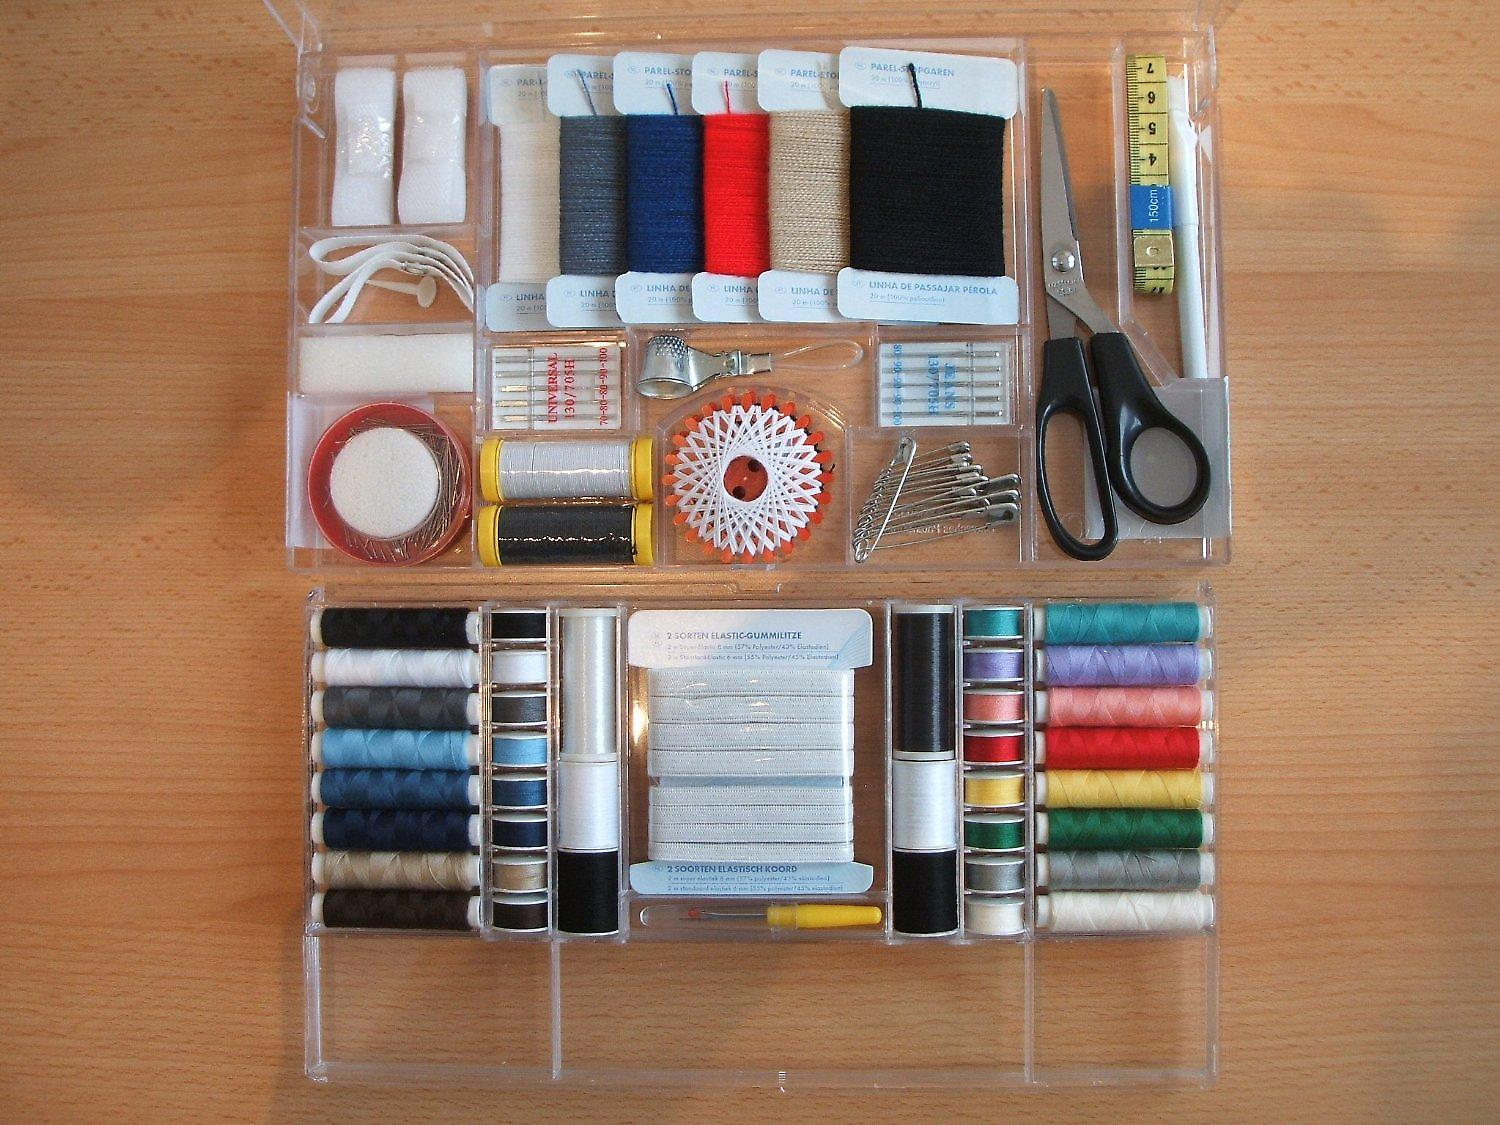 SewPro - 373 Piece Deluxe All in One Sewing Kit with Variety of Threads Yarns Needles Pins Scissor Tape Buttons and More + Beginners Guide Ideas BOOKLET